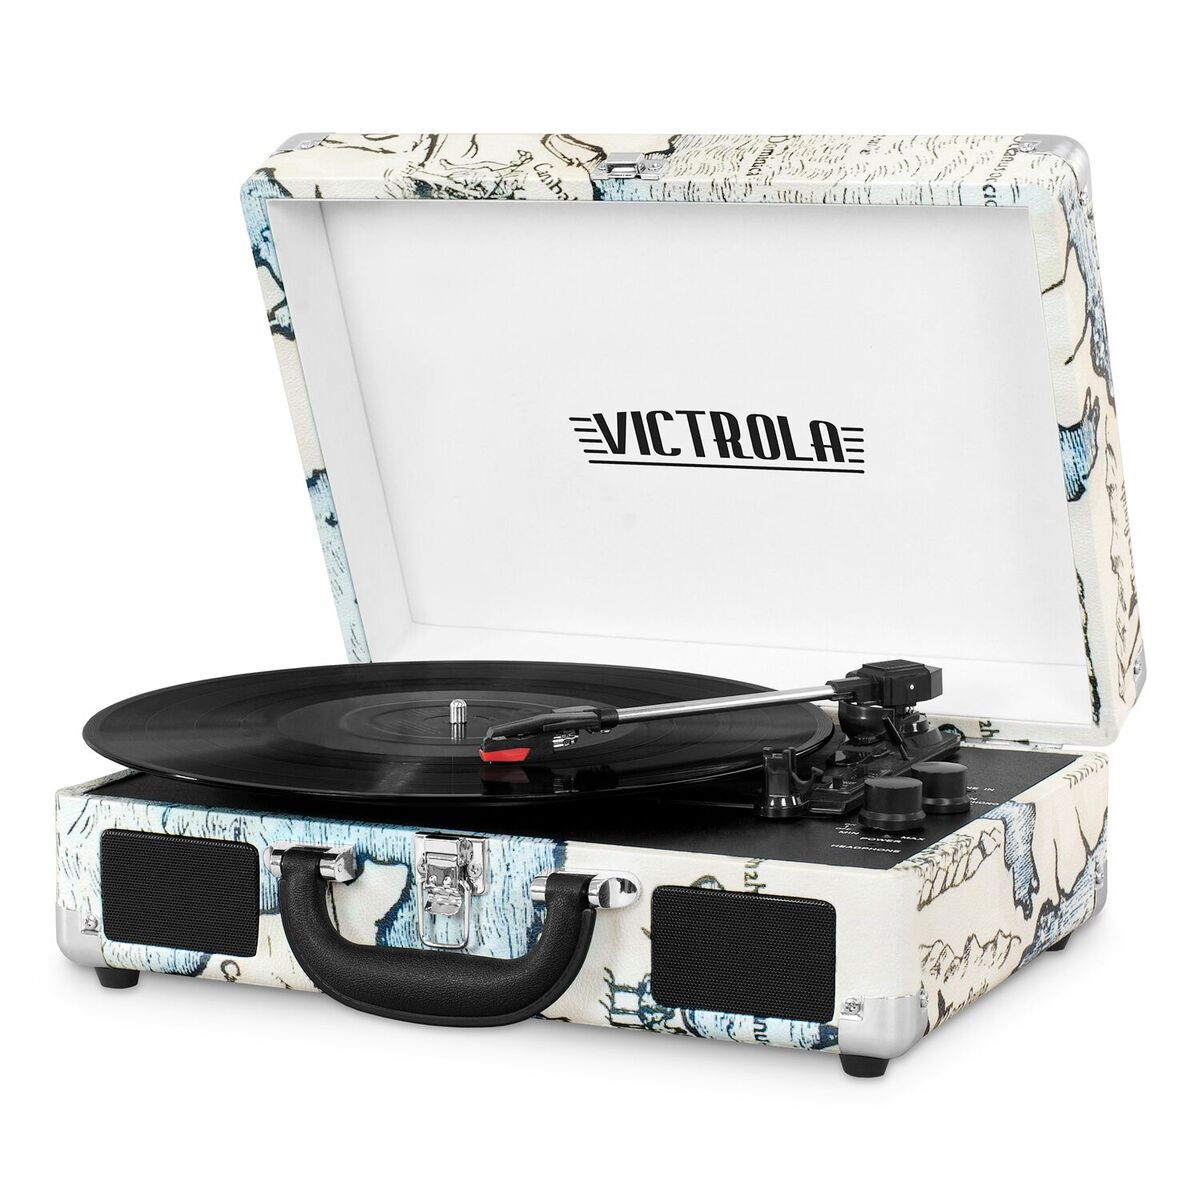 Victrola Bluetooth Portable Suitcase Record Player with 3-speed Turntable, Map Print